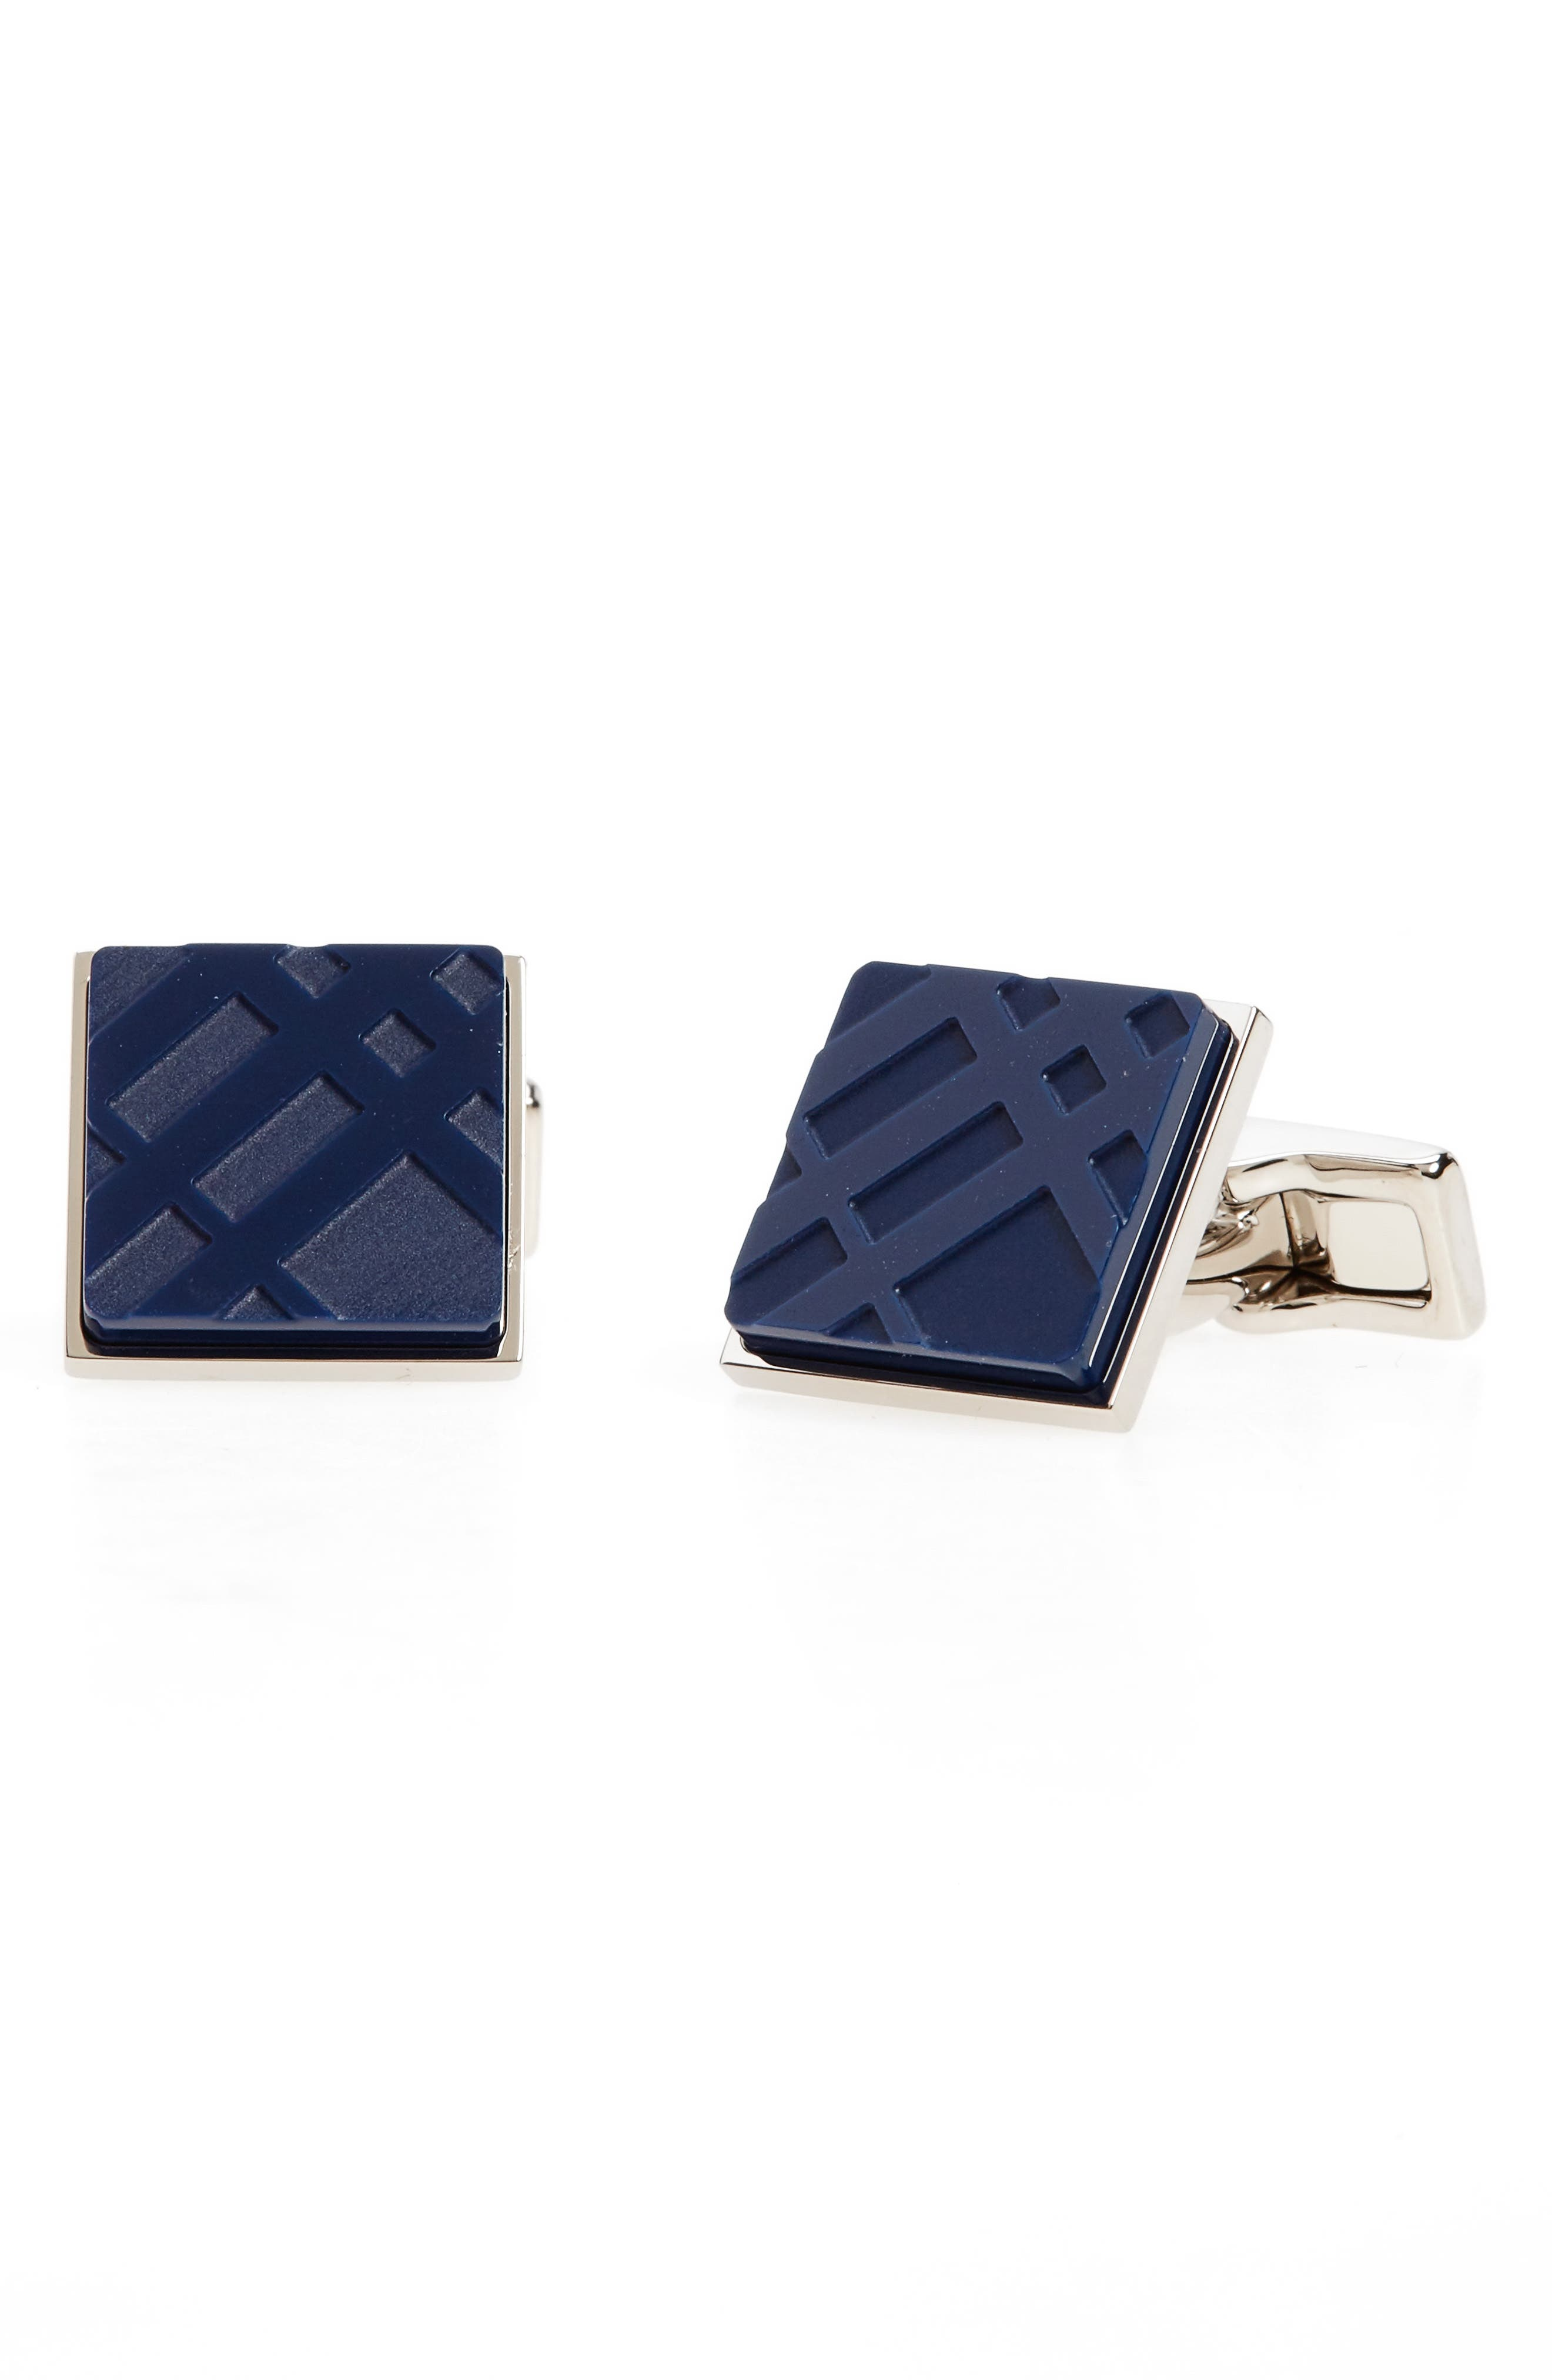 Burberry Square Cuff Links